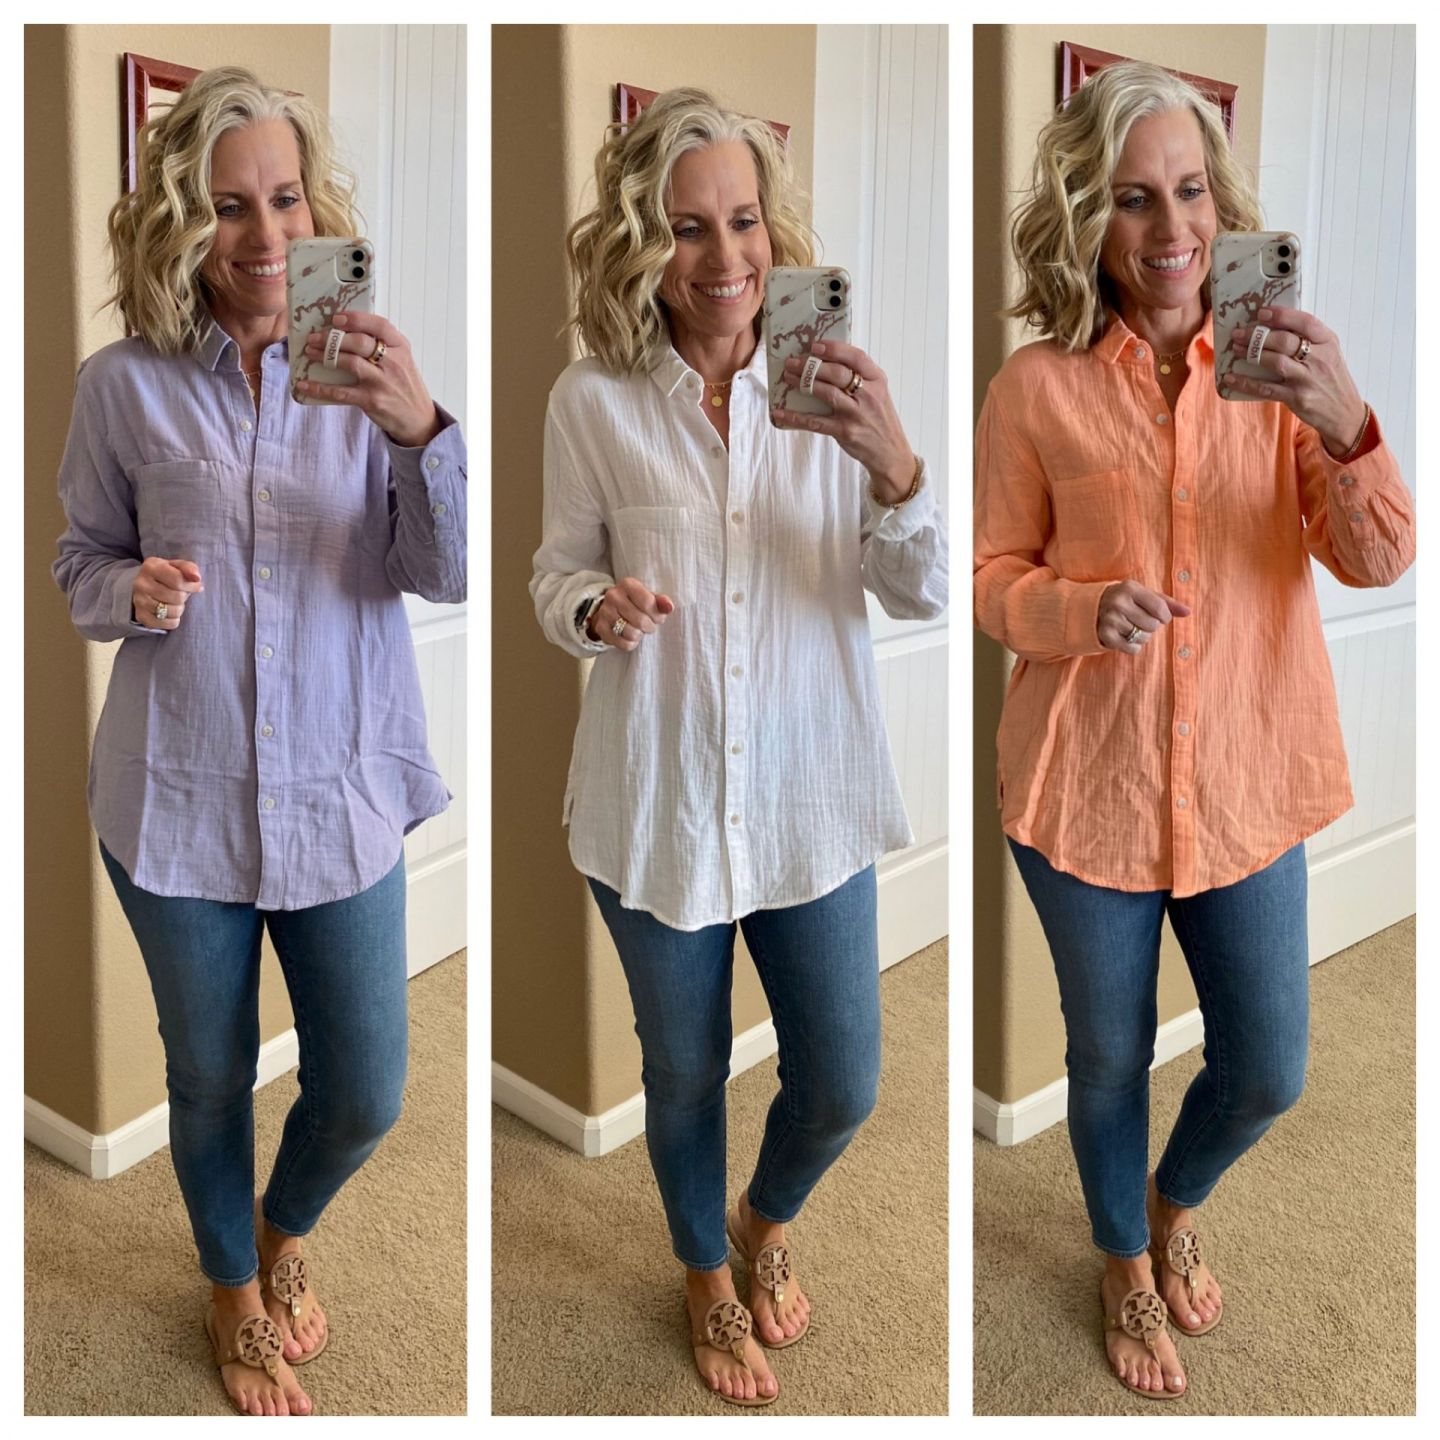 Target Free People dupe shirt - March top 10 sellers